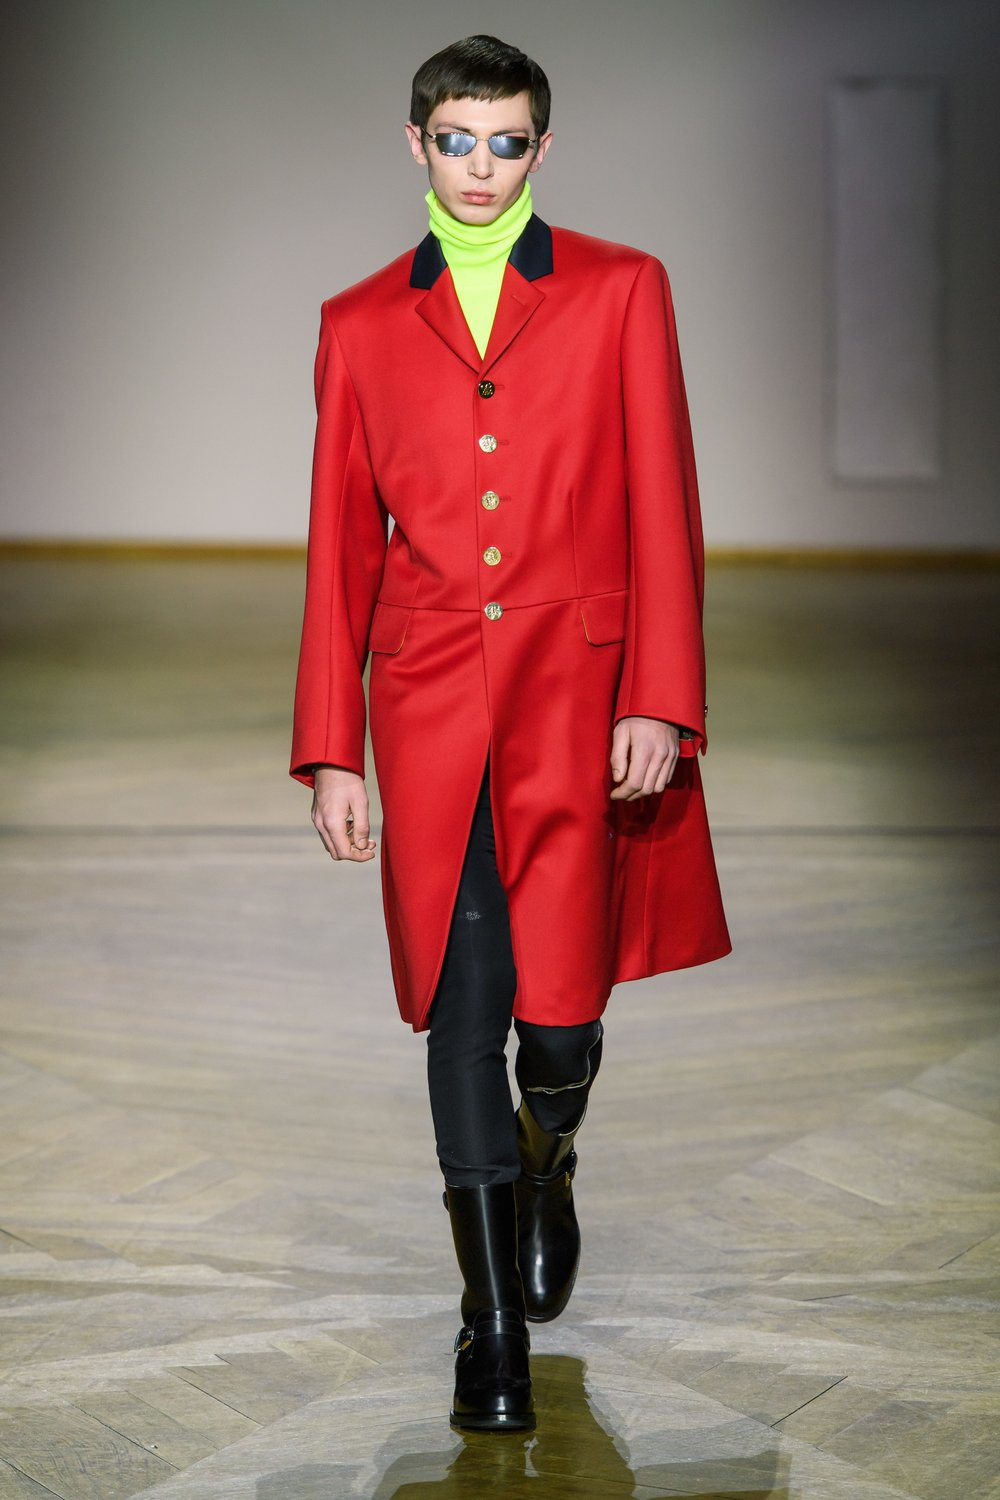 FW - Paul Smith 2019 1.jpg